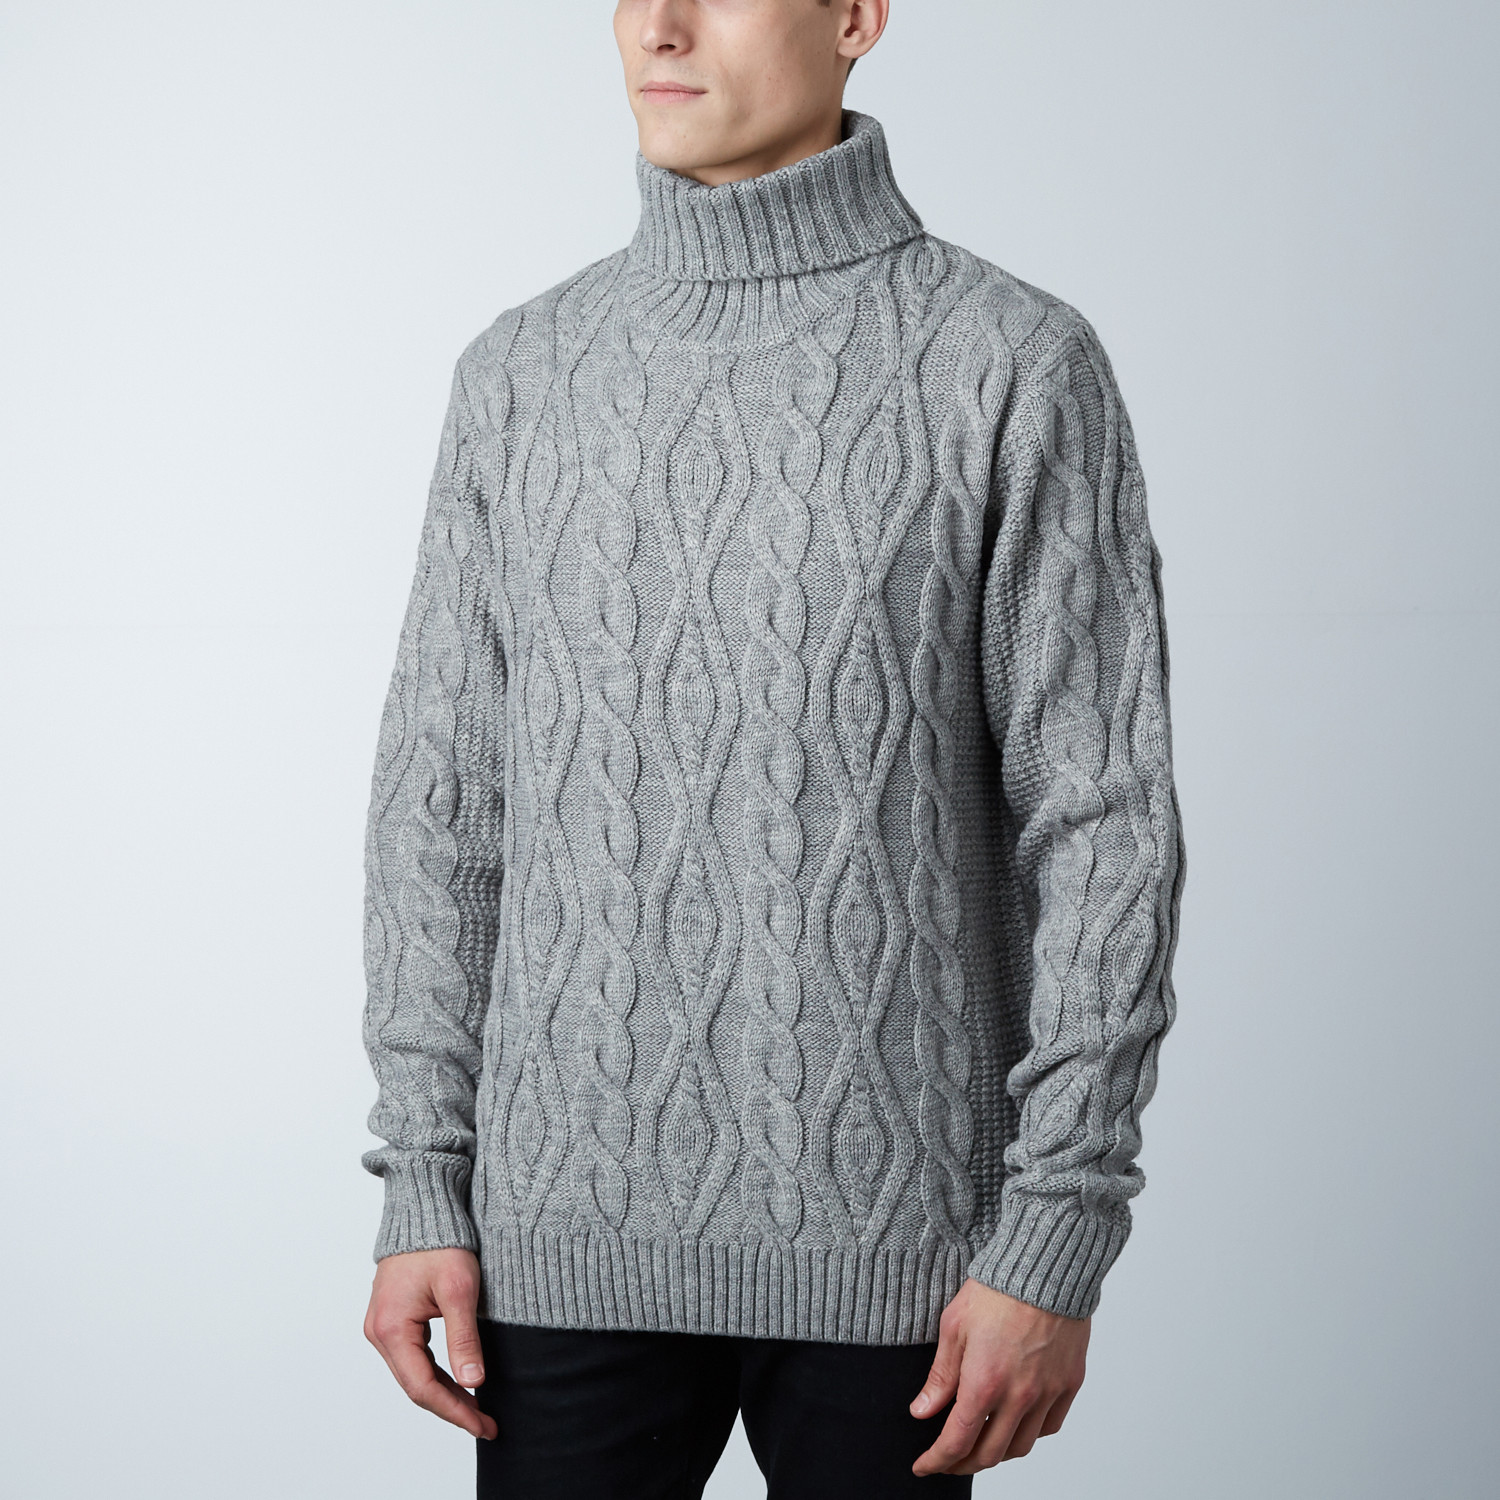 Easton Wool Cable Knit Cardigan Sweater // Grey (S) - Fresh Brand ...